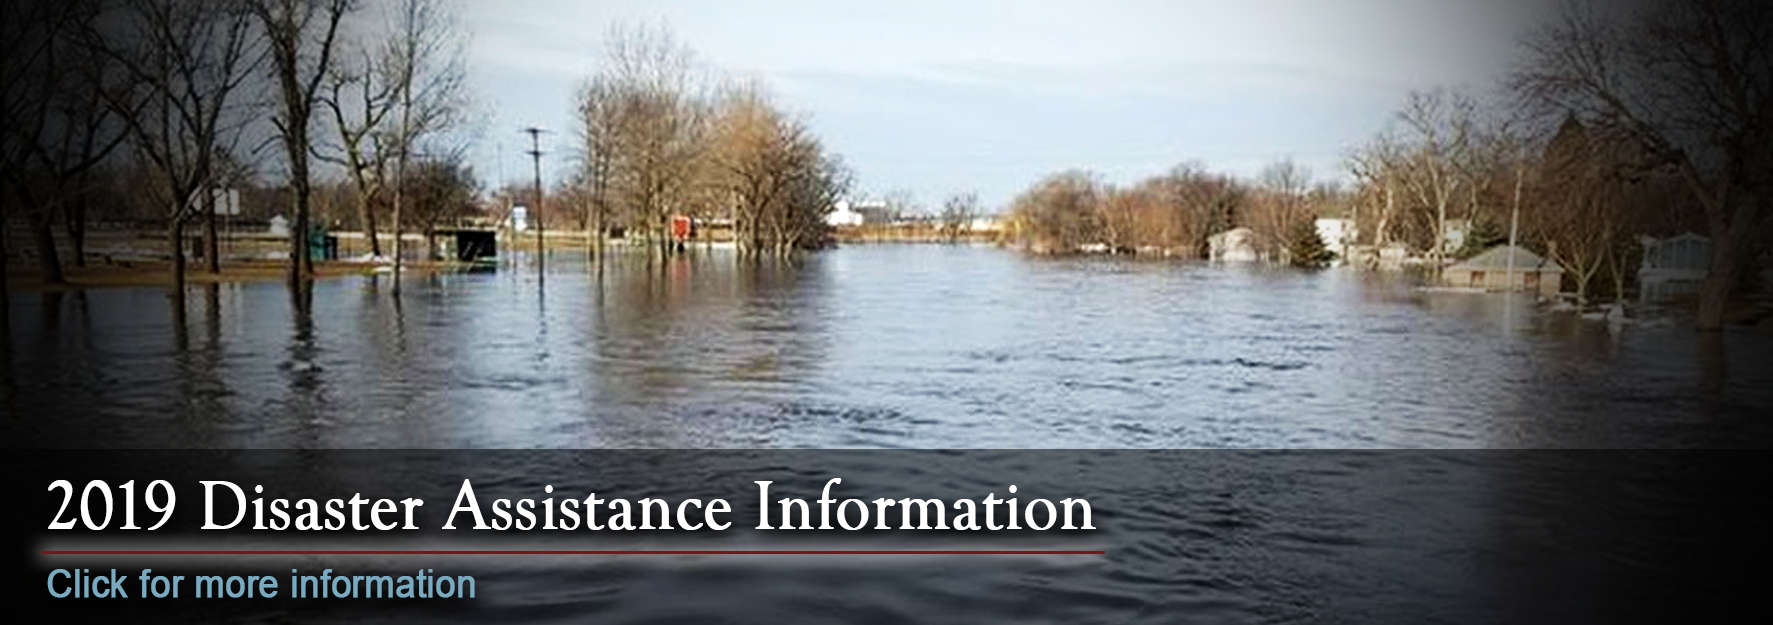 2019 Disaster Assistance Information